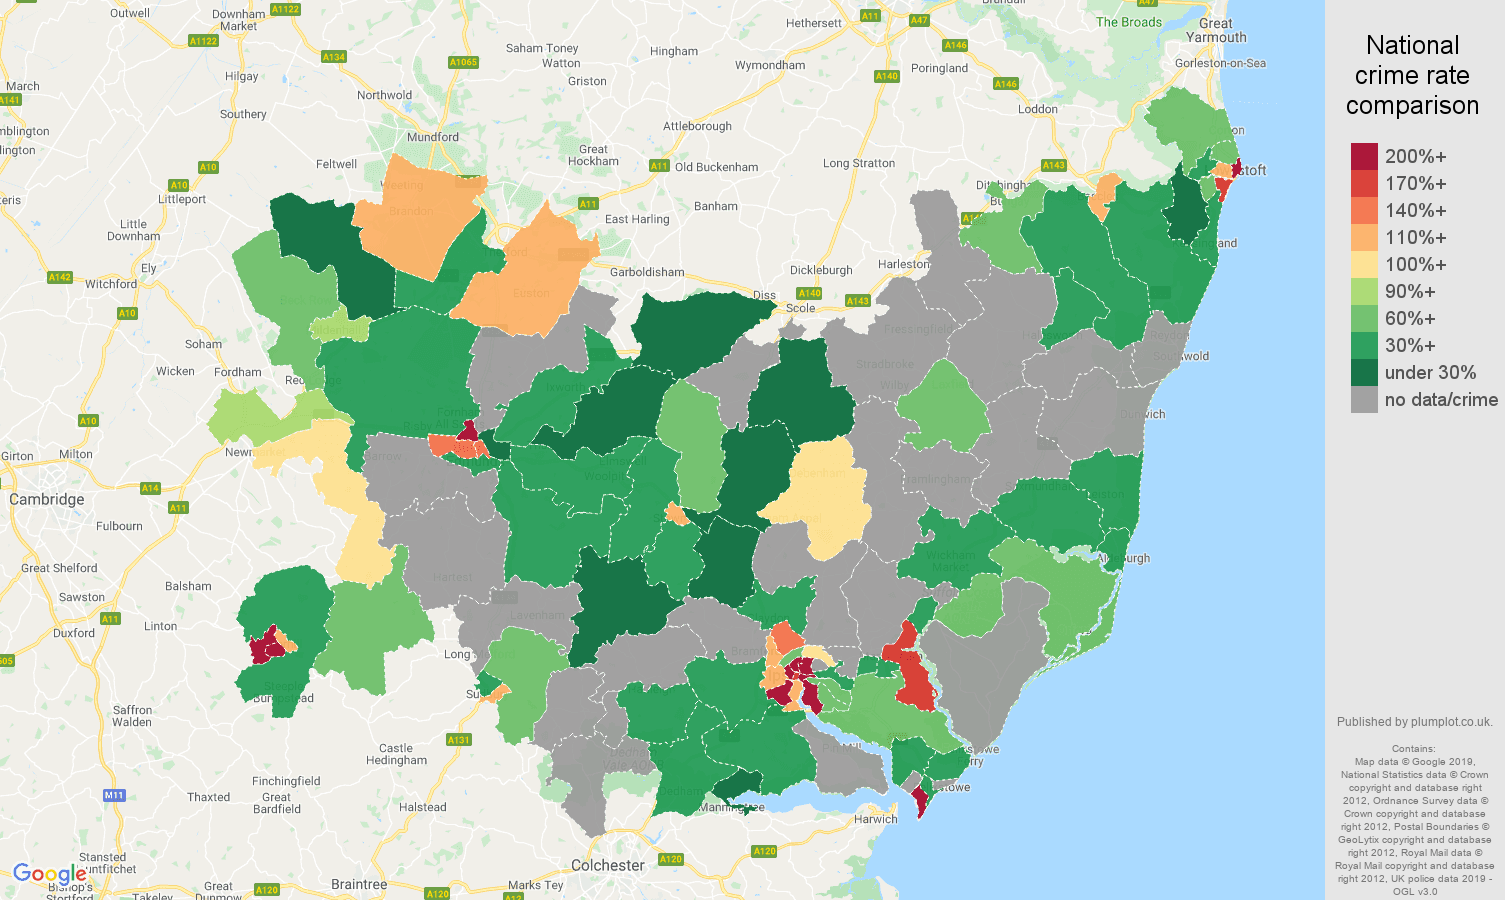 Suffolk possession of weapons crime rate comparison map